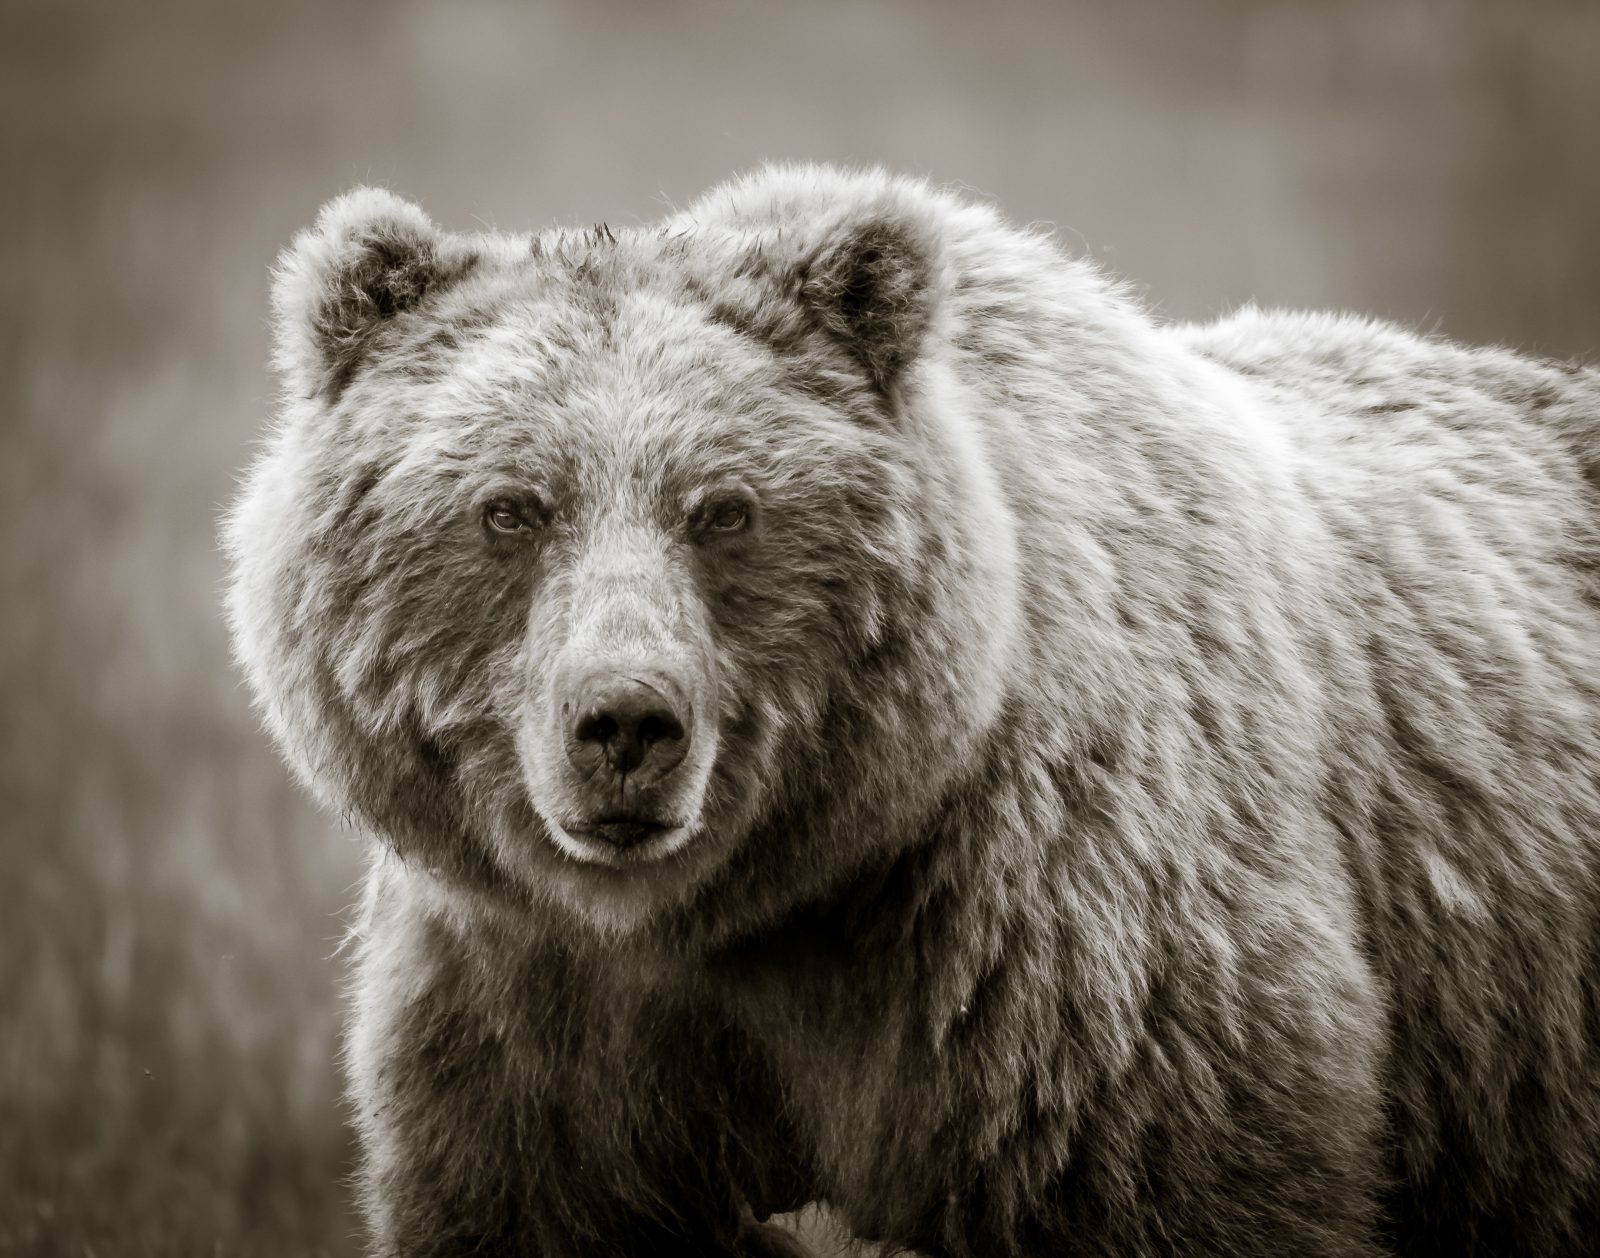 Grizzly in Black and White